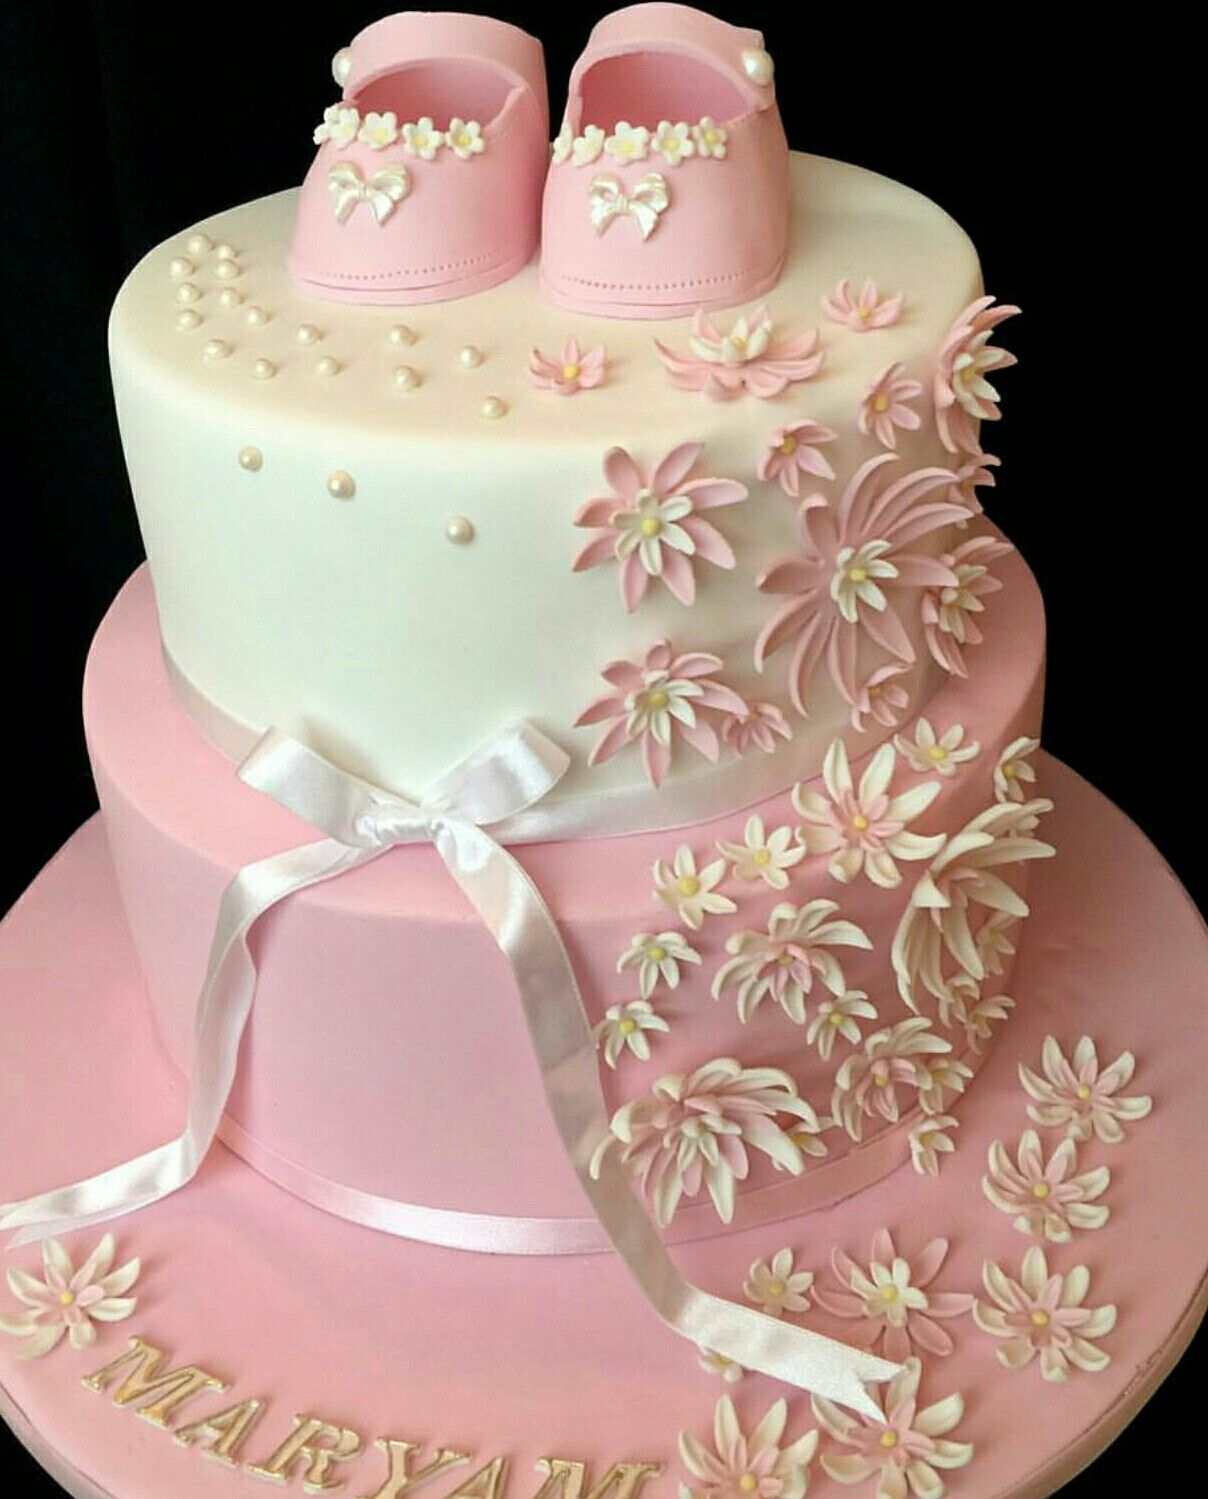 Pin by martha garcia on baby pinterest cake art fondant and cake